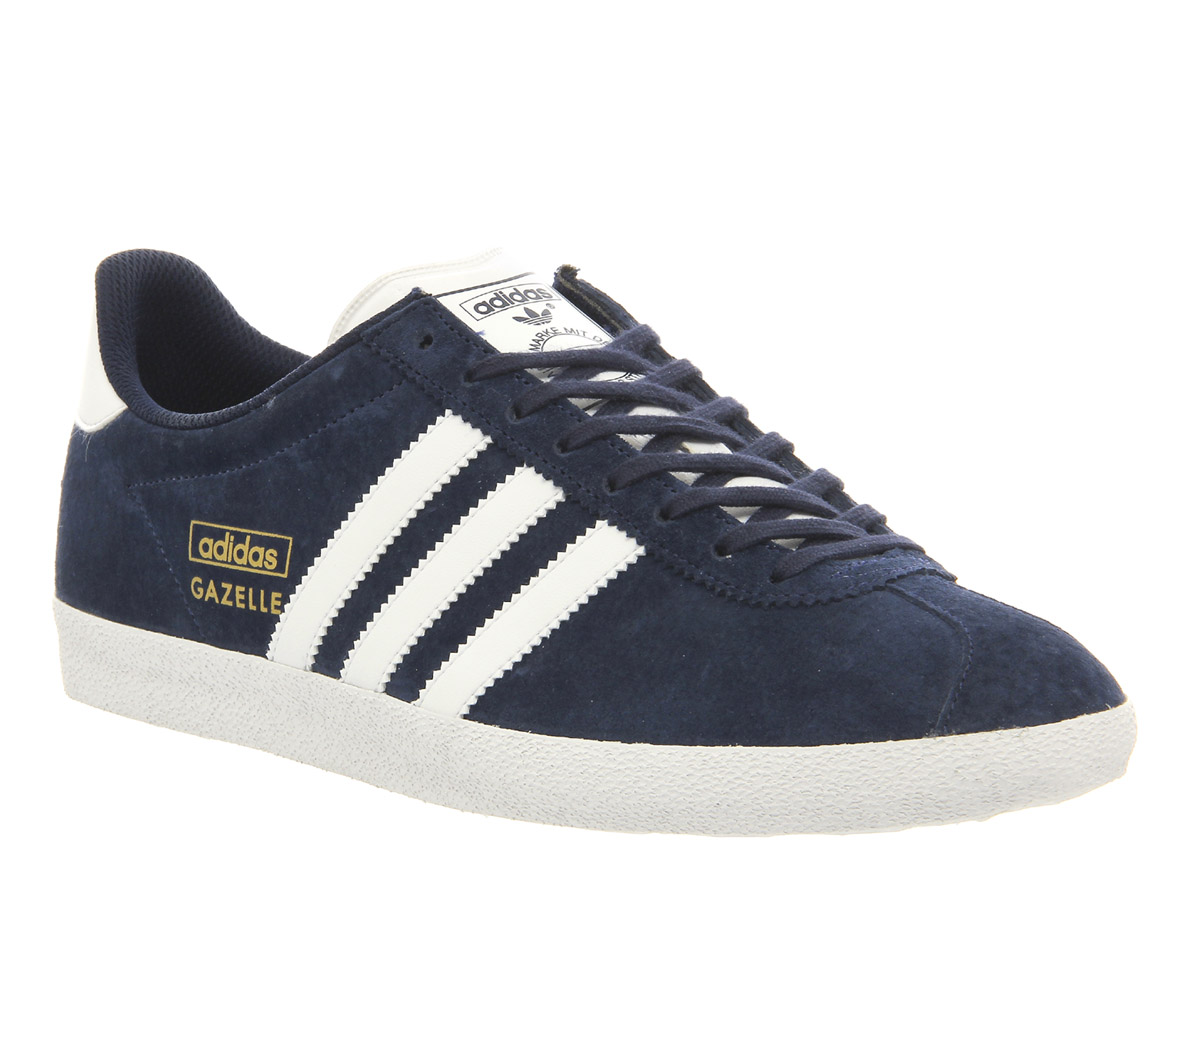 Adidas Originals Gazelle Sneakers in Navy Suede Meghan's